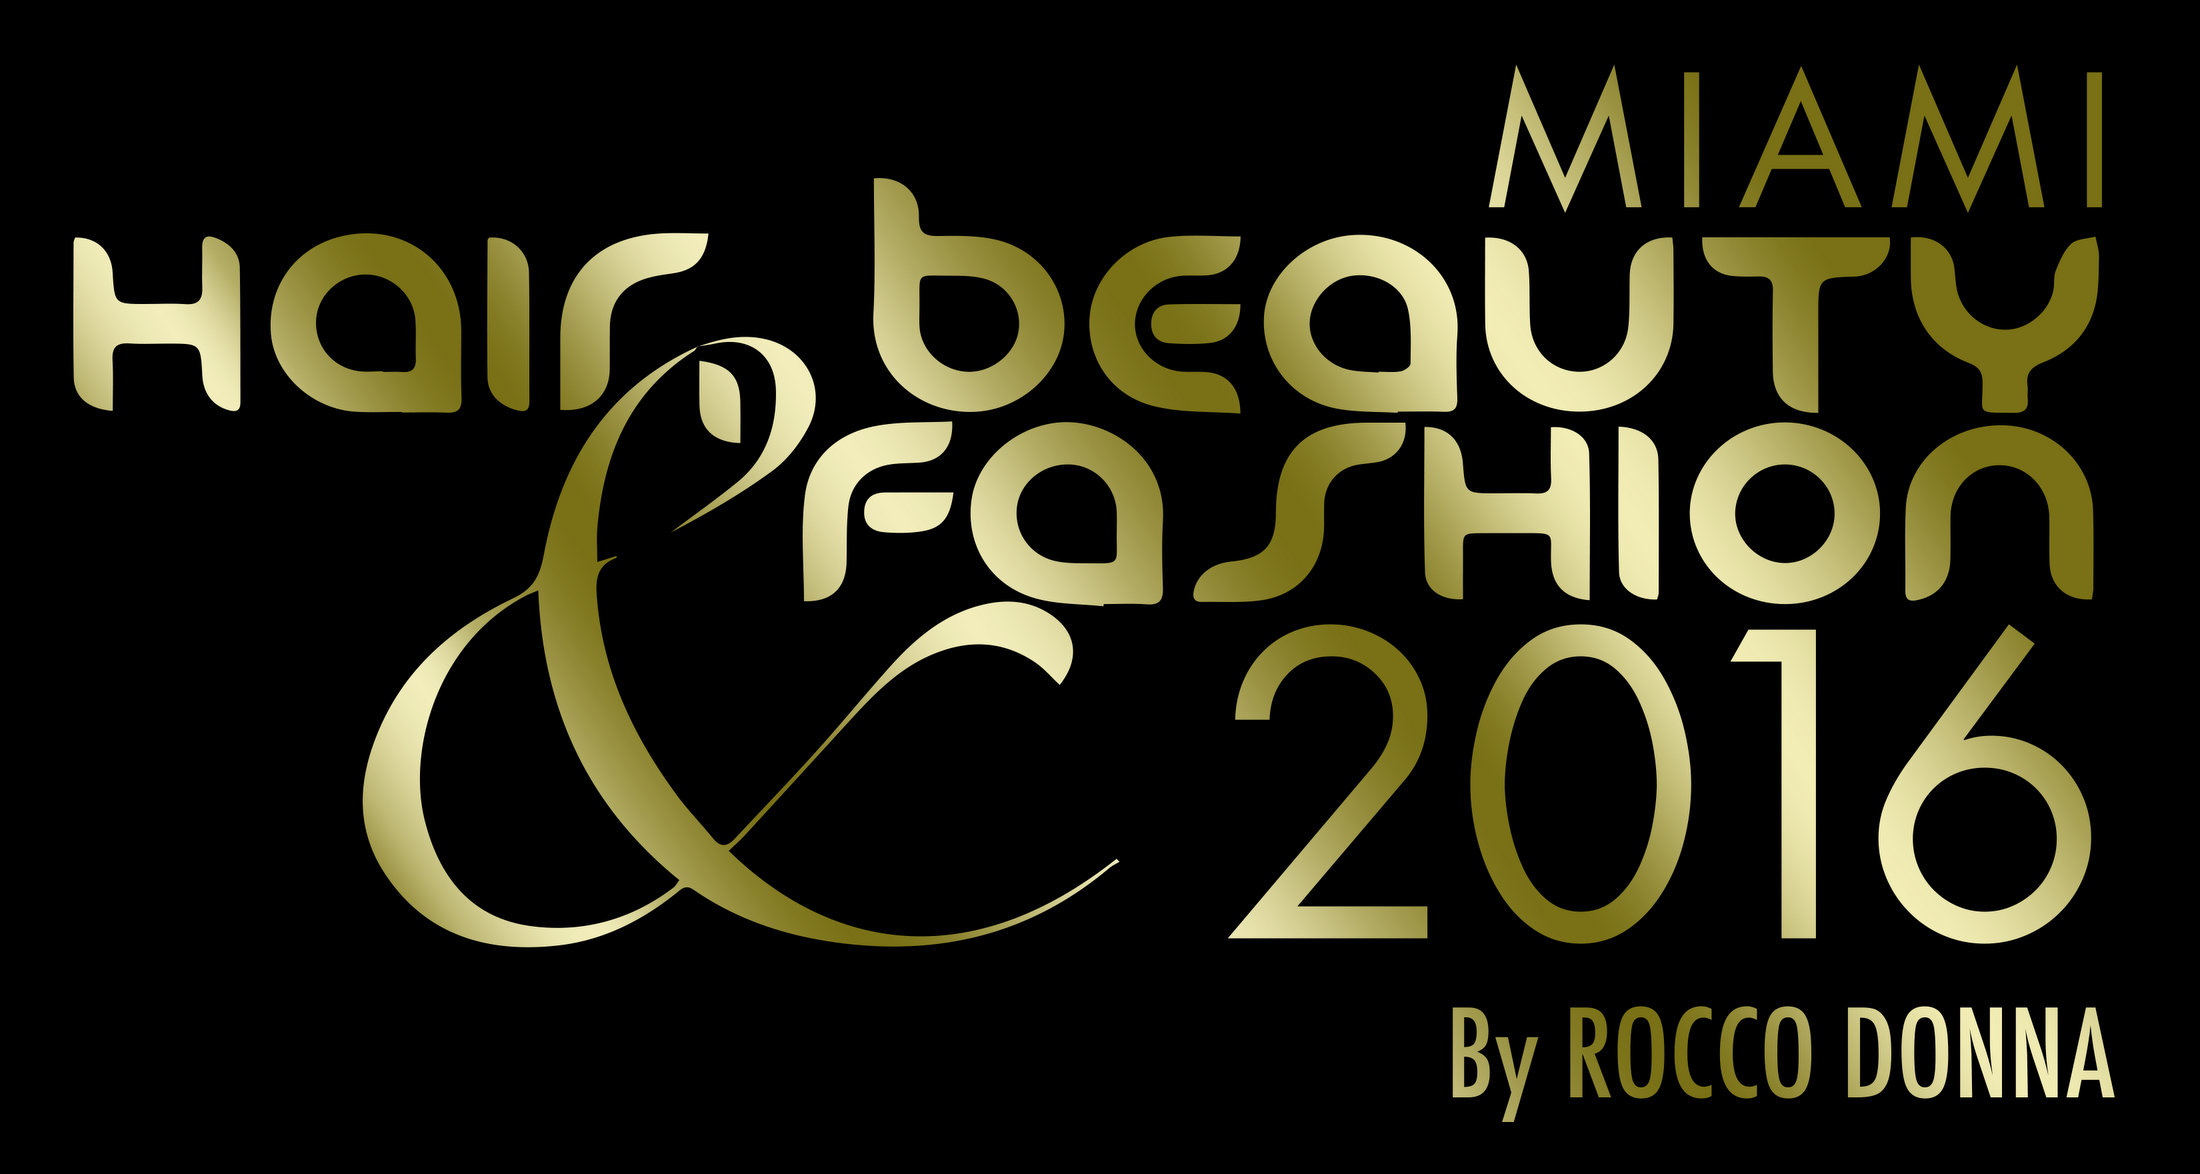 'Miami Hair, Beauty & Fashion by Rocco Donna' is ready to celebrate its 11 Edition